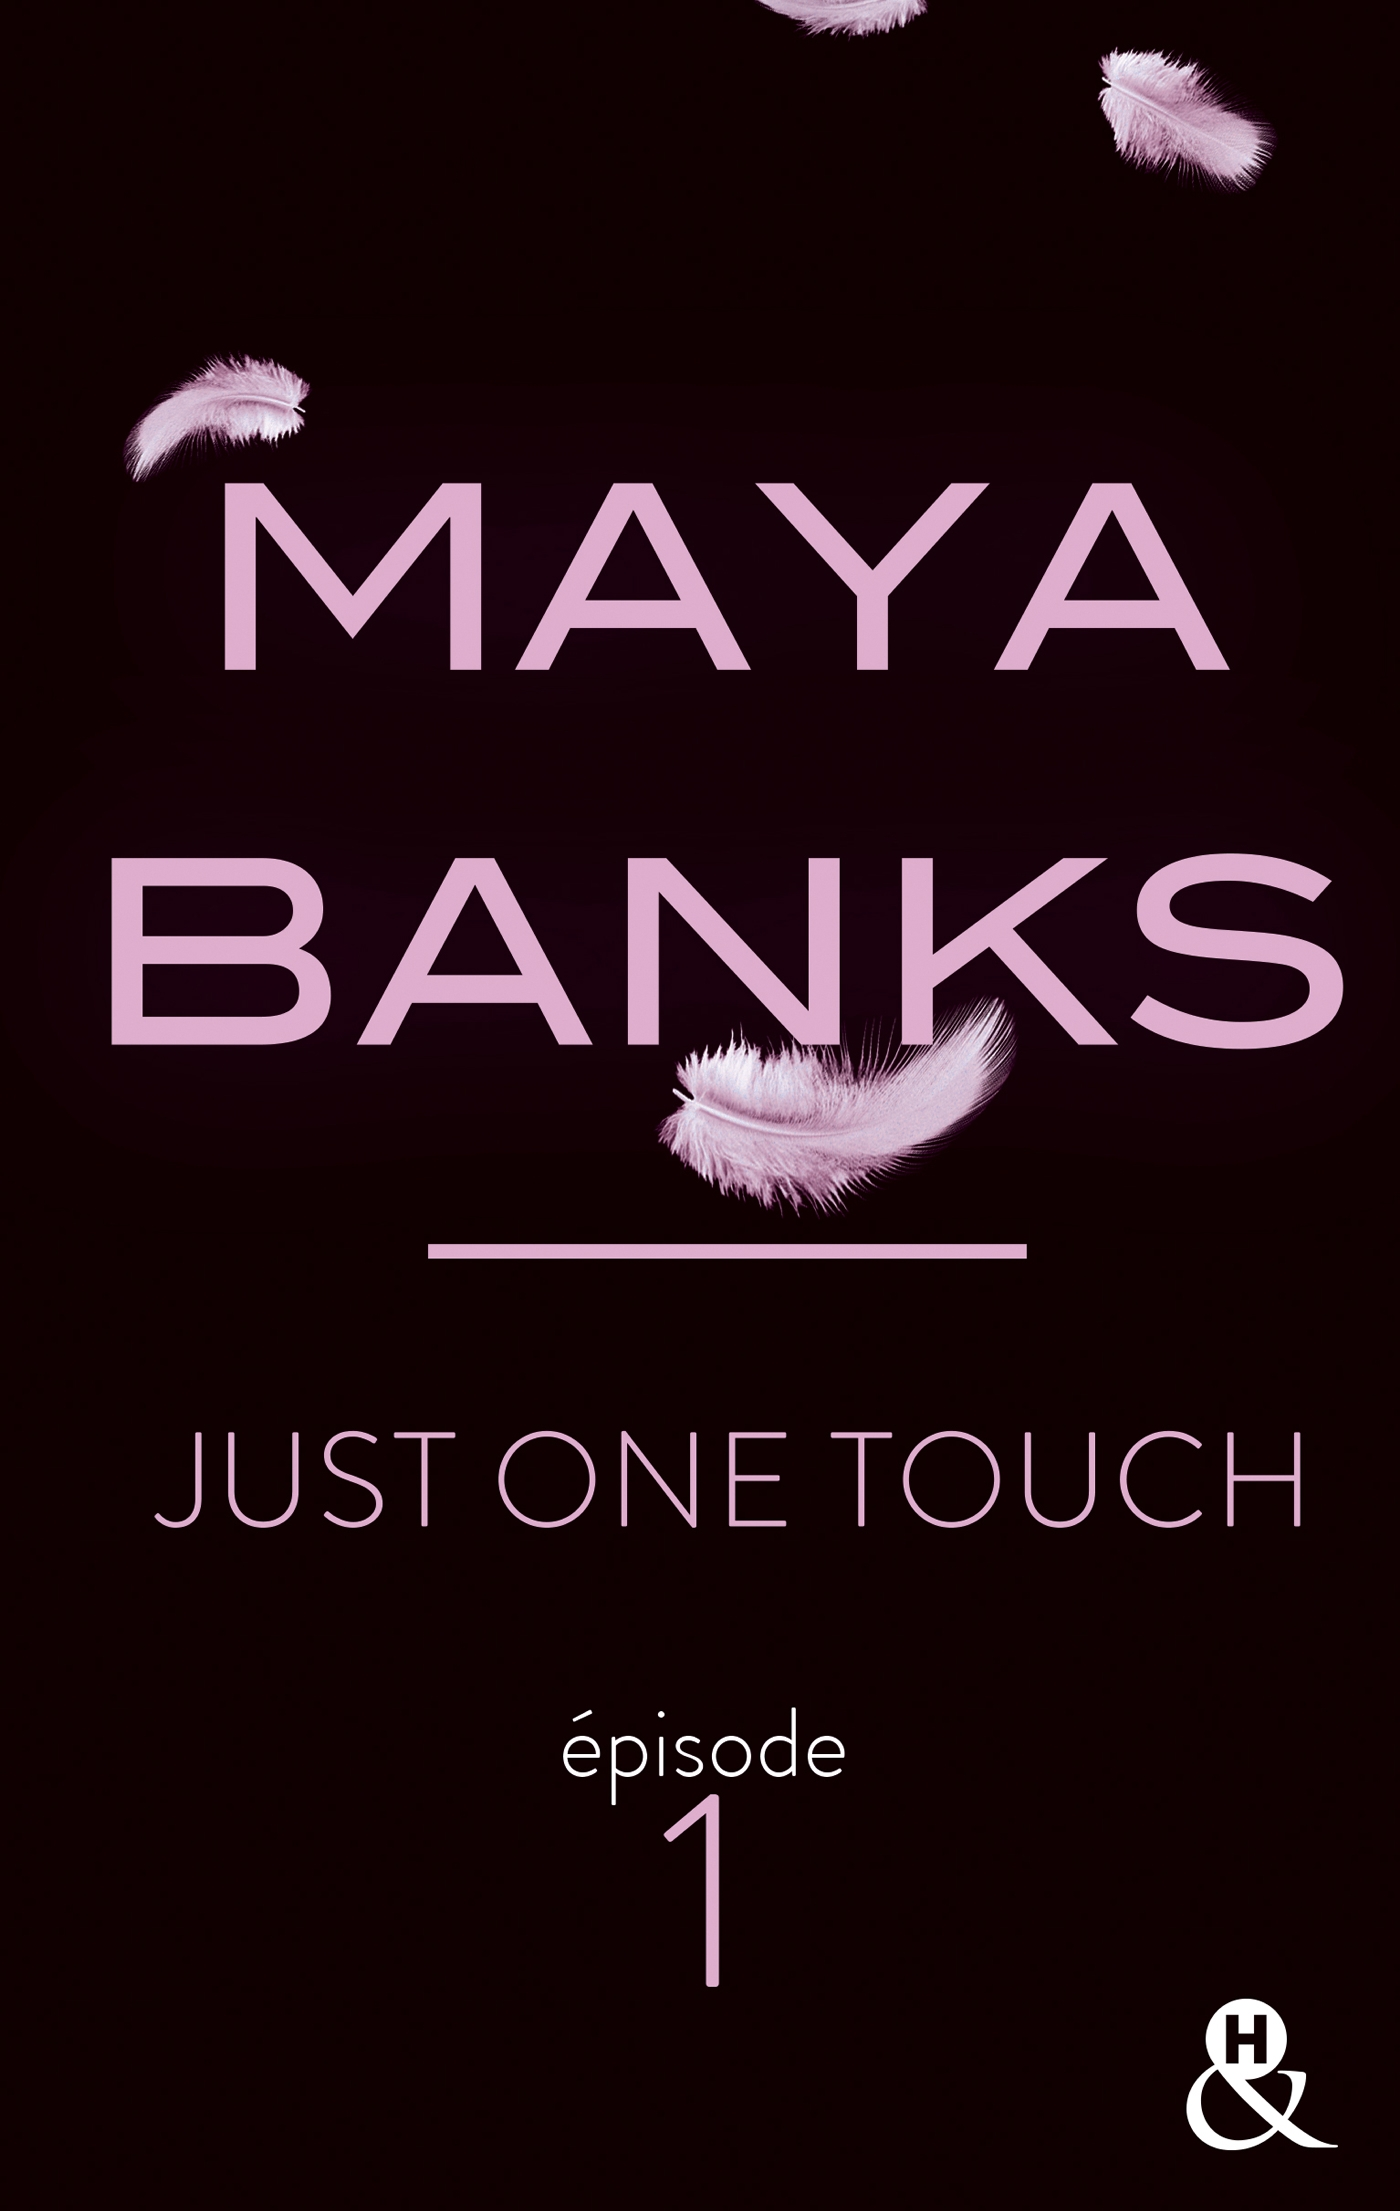 Just One Touch - Episode 1